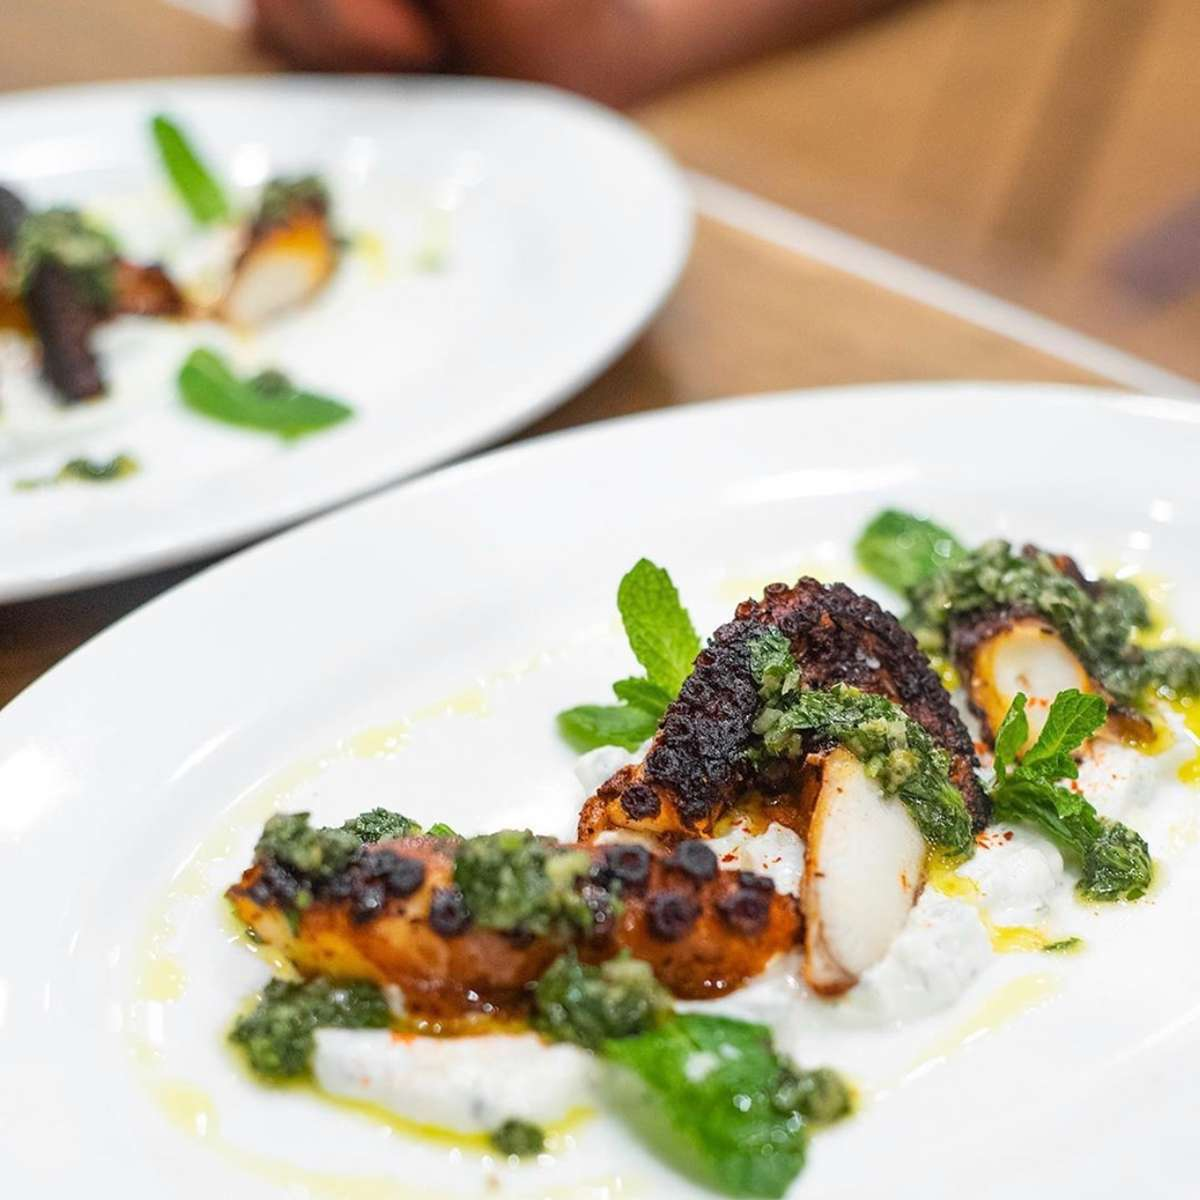 HARISSA GLAZED OCTOPUS